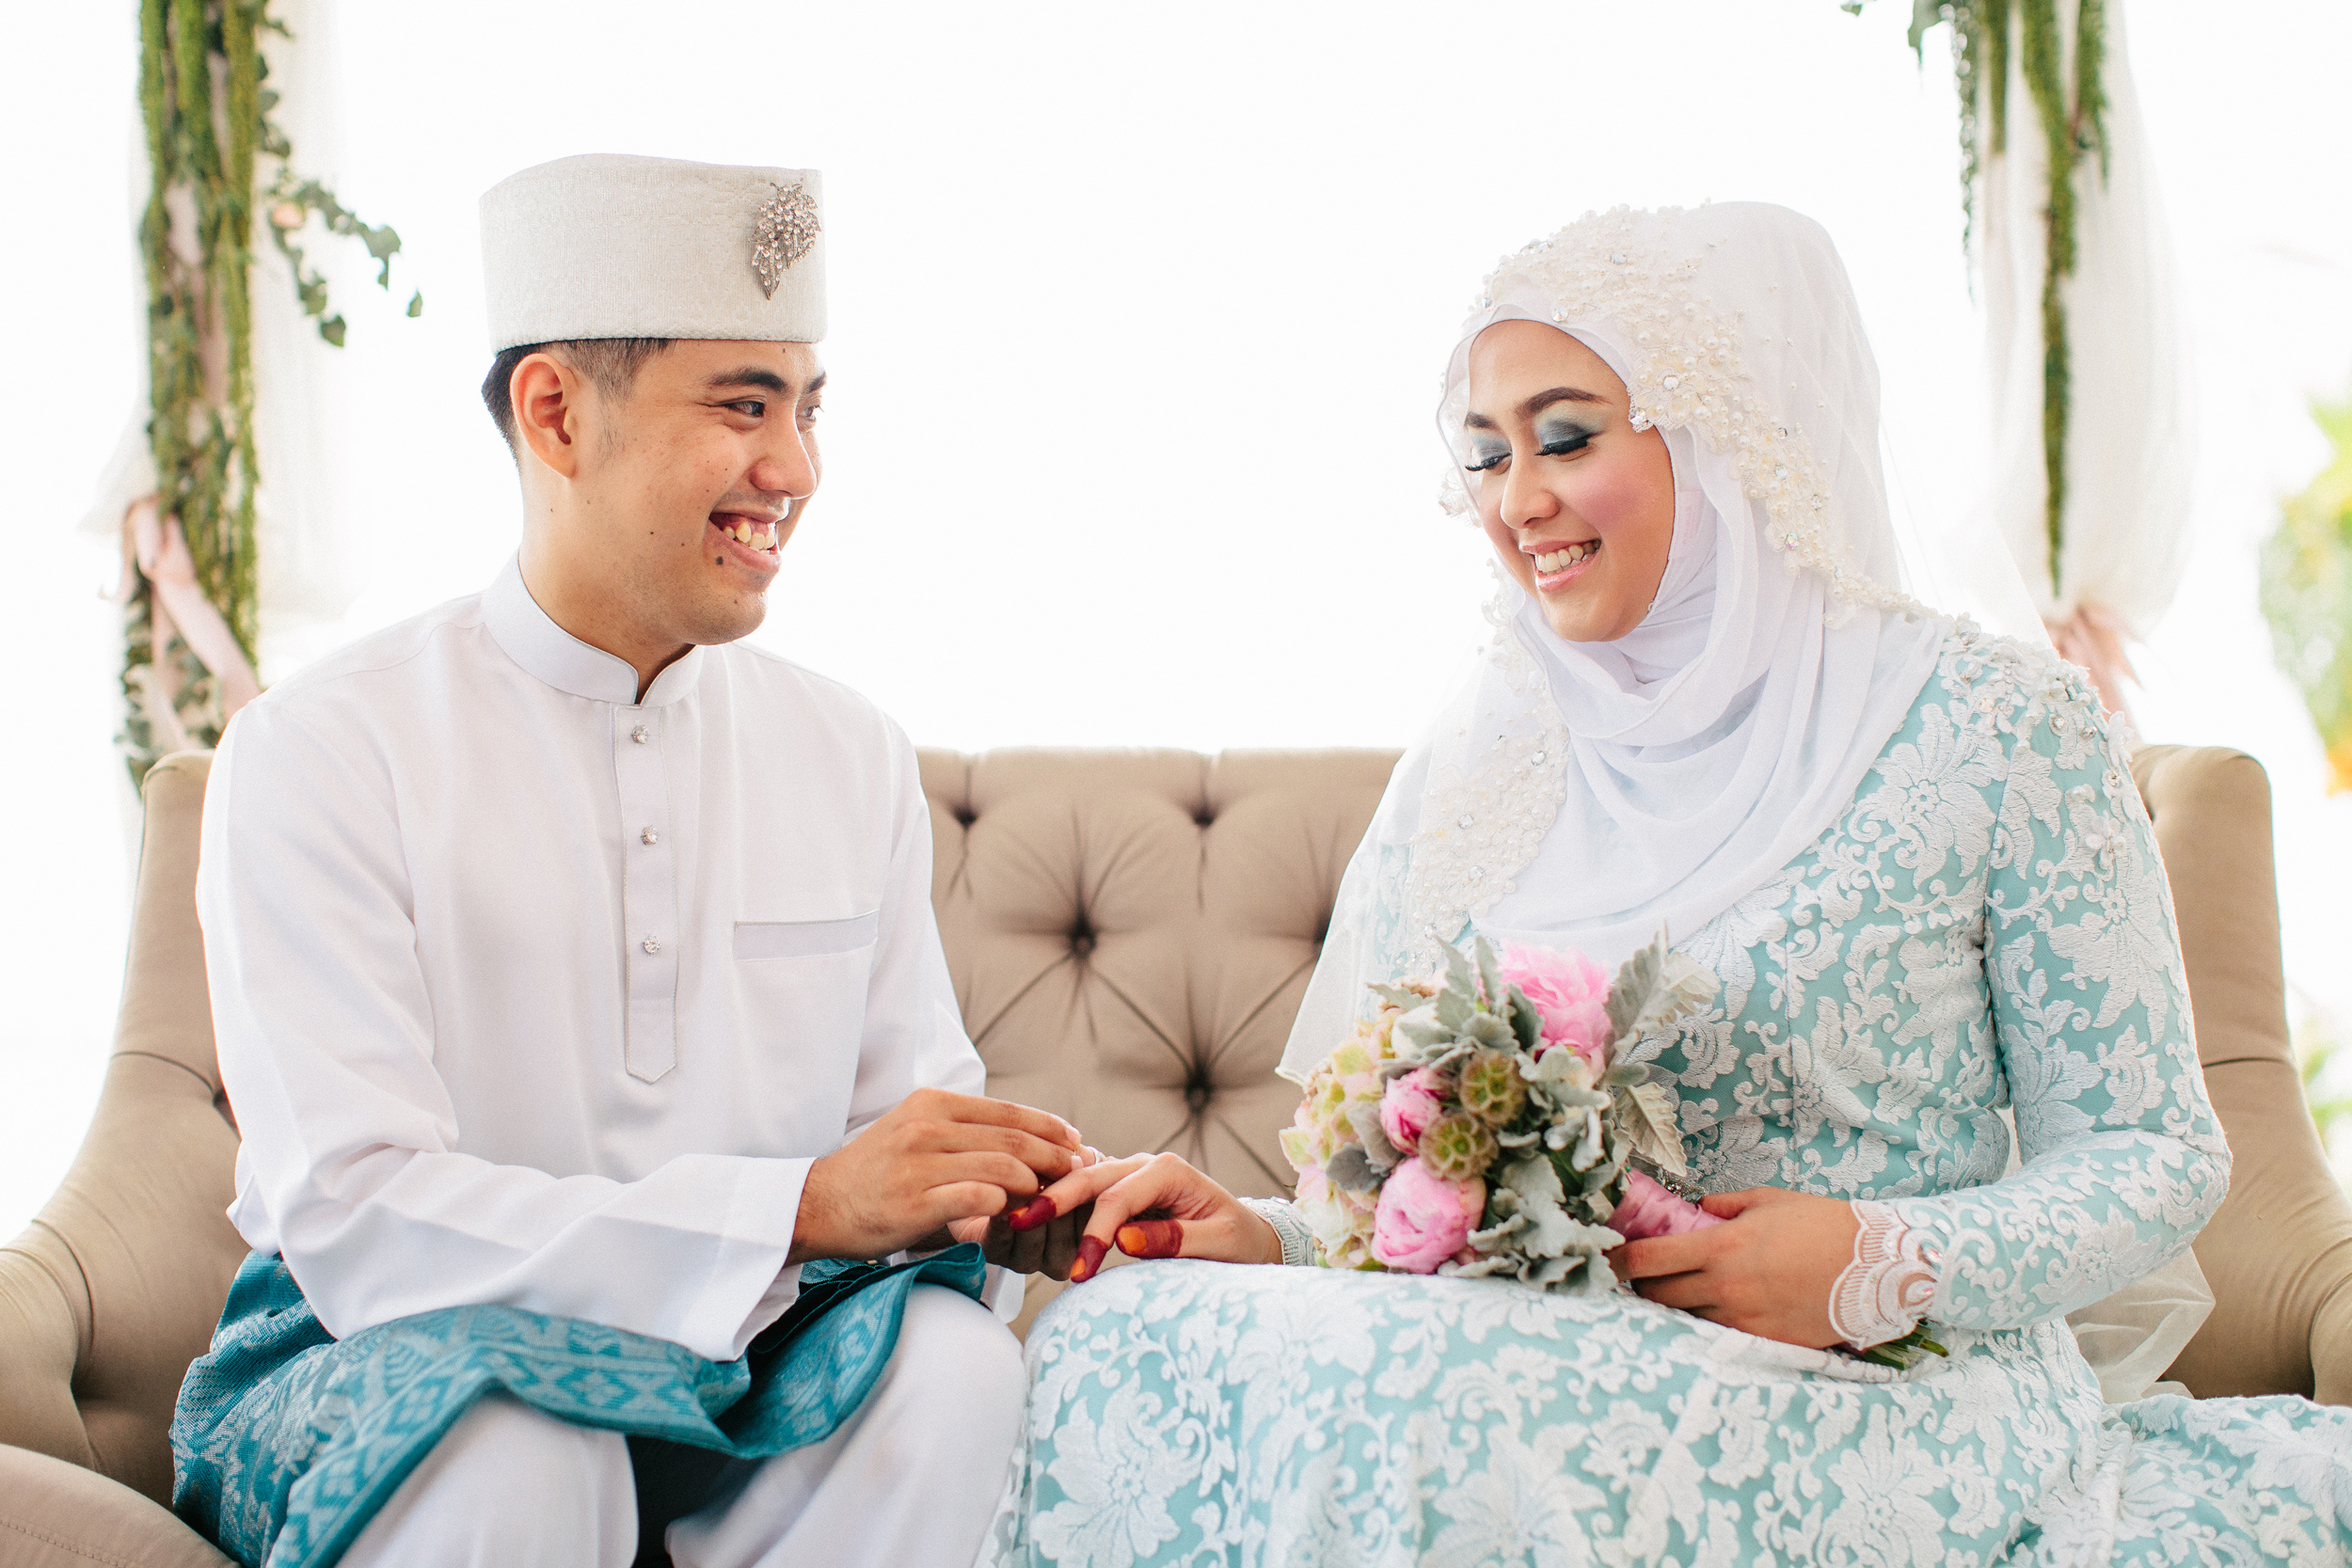 singapore-wedding-photographer-wemadethese-aisyah-helmi-22.jpg